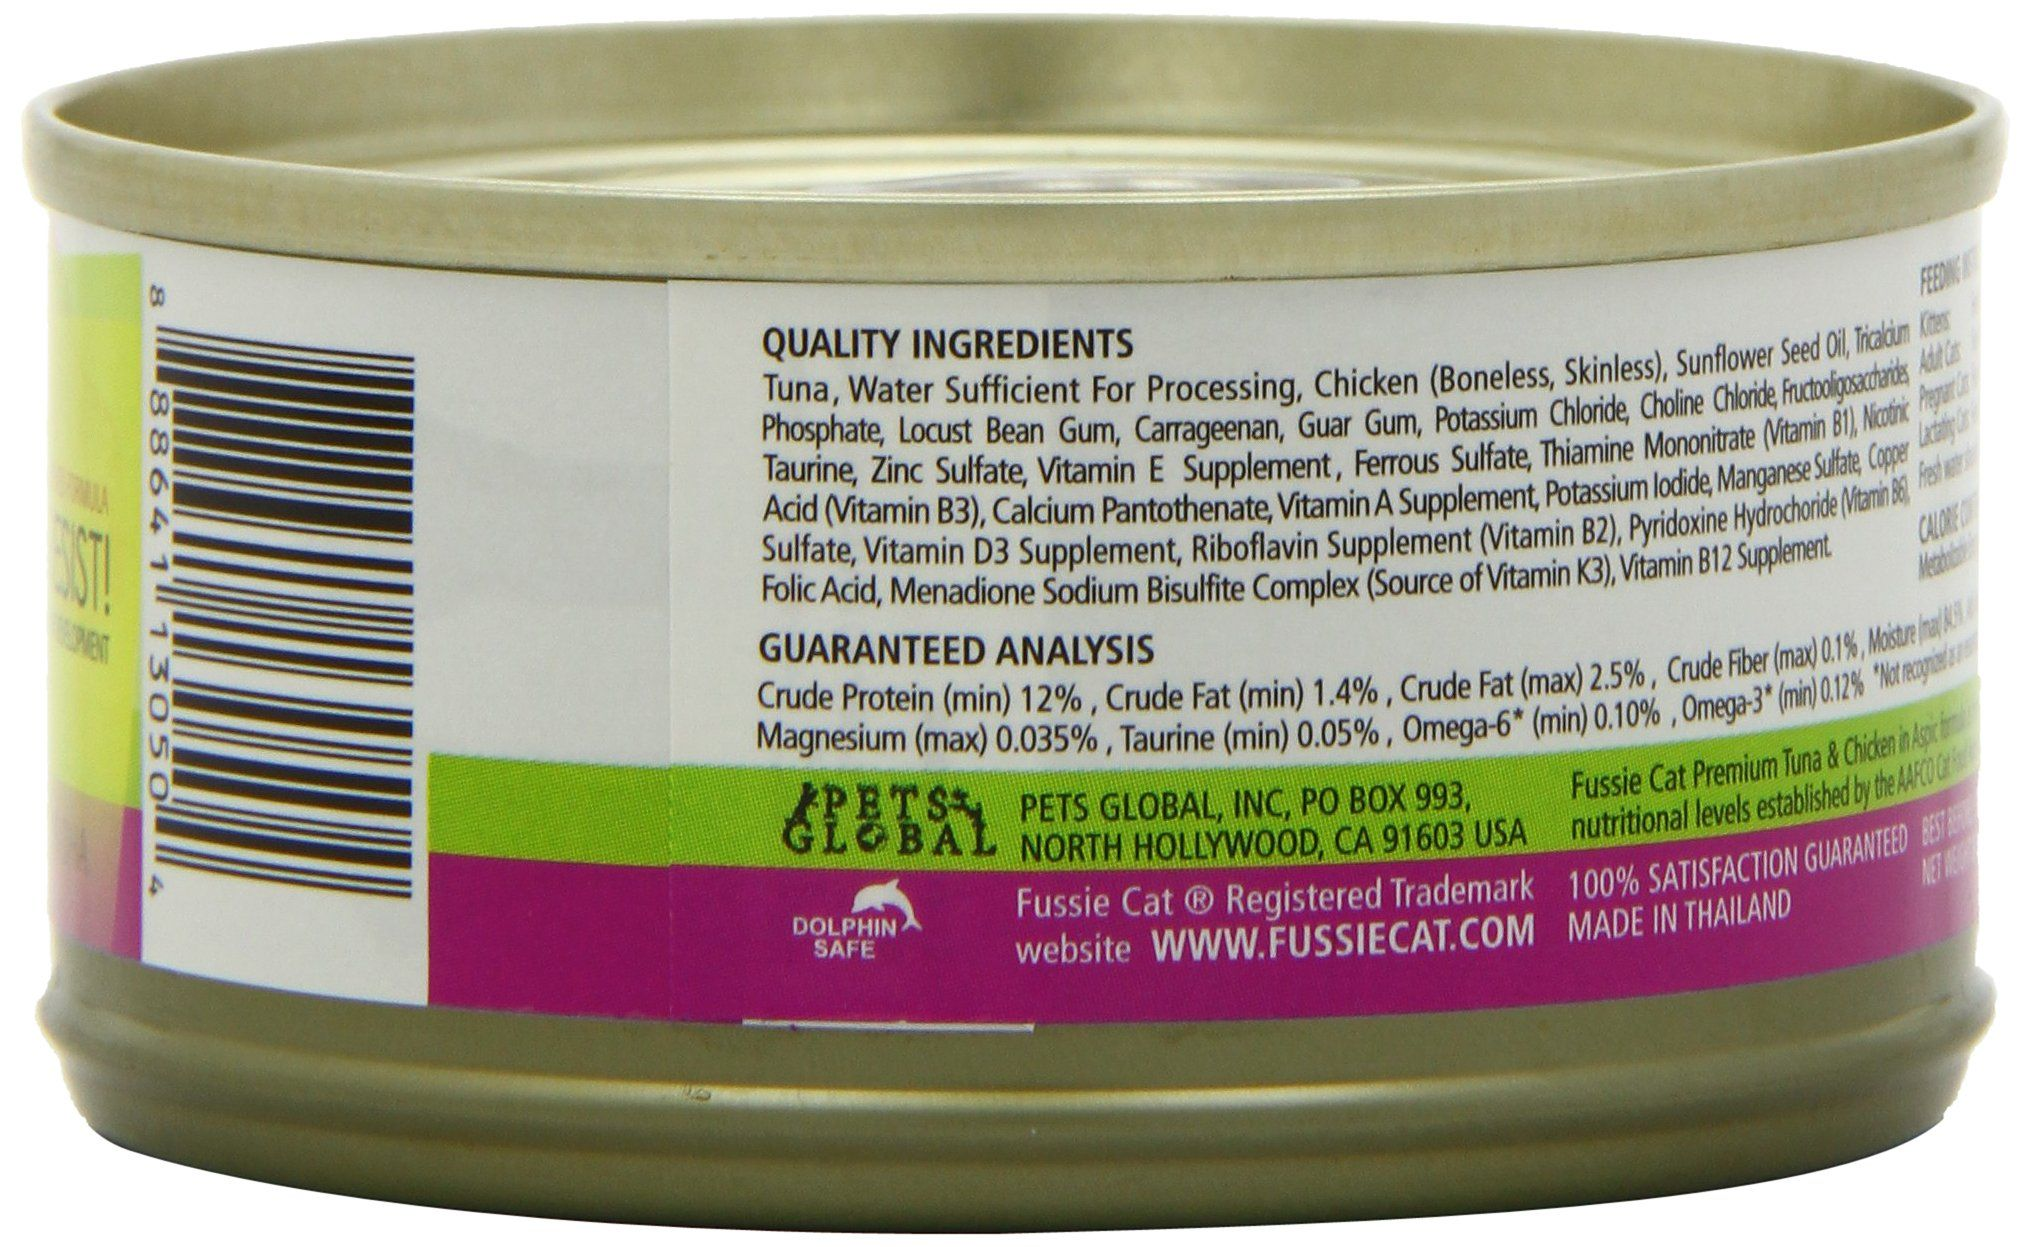 Fussie Cat Premium Tuna with Chicken Canned Cat Food 24 2